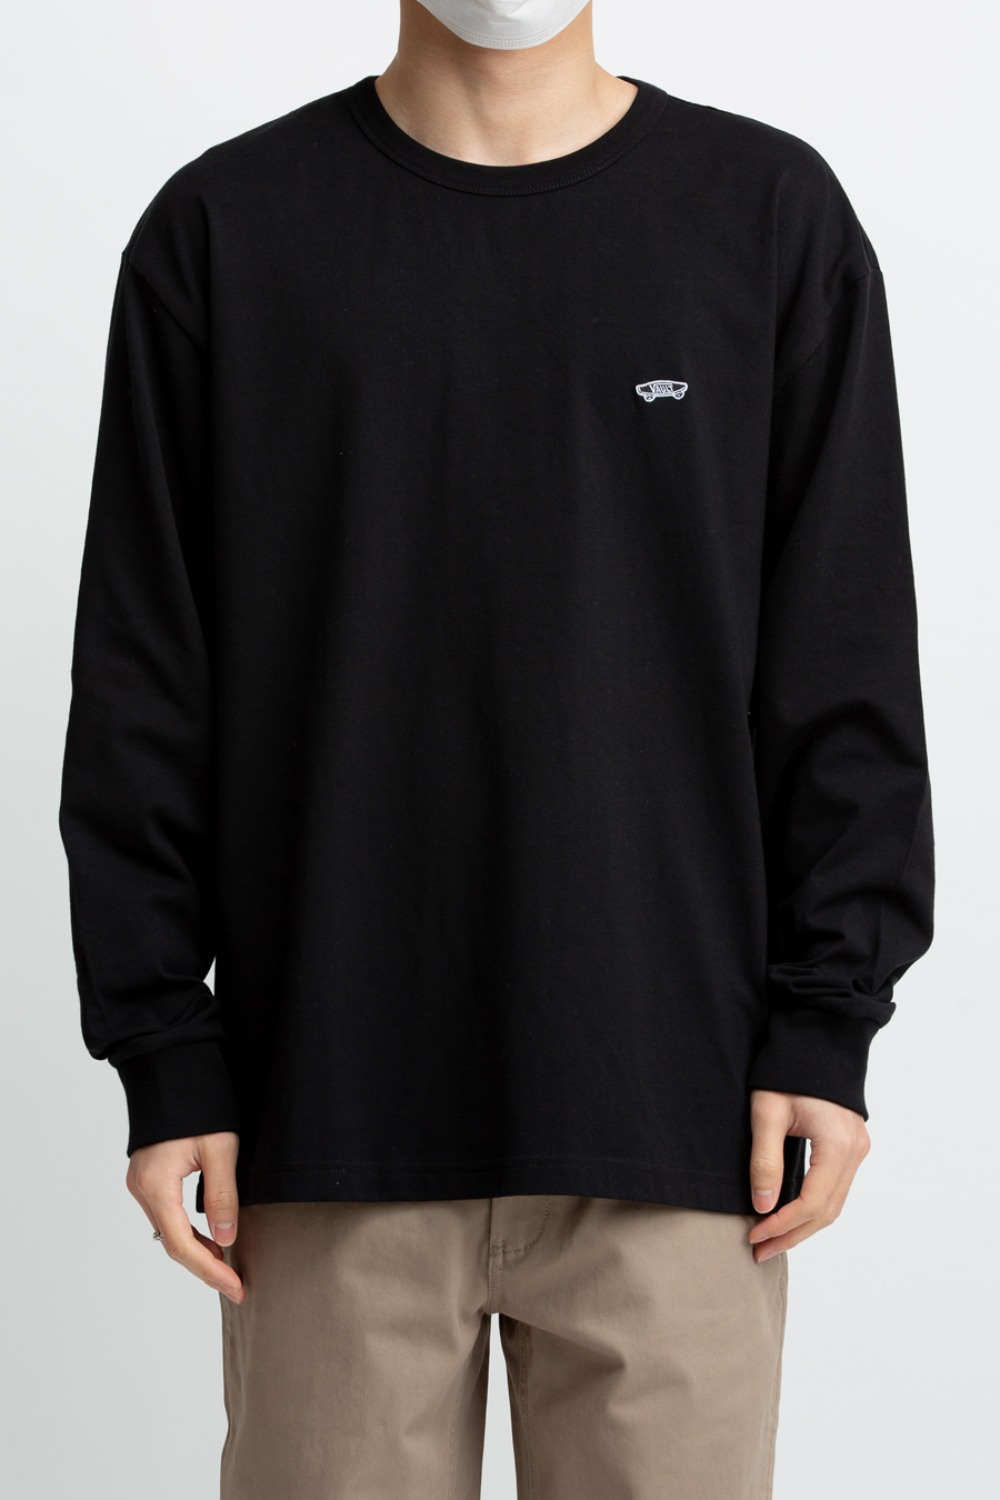 VAULT OG LS T-SHIRT BLACK